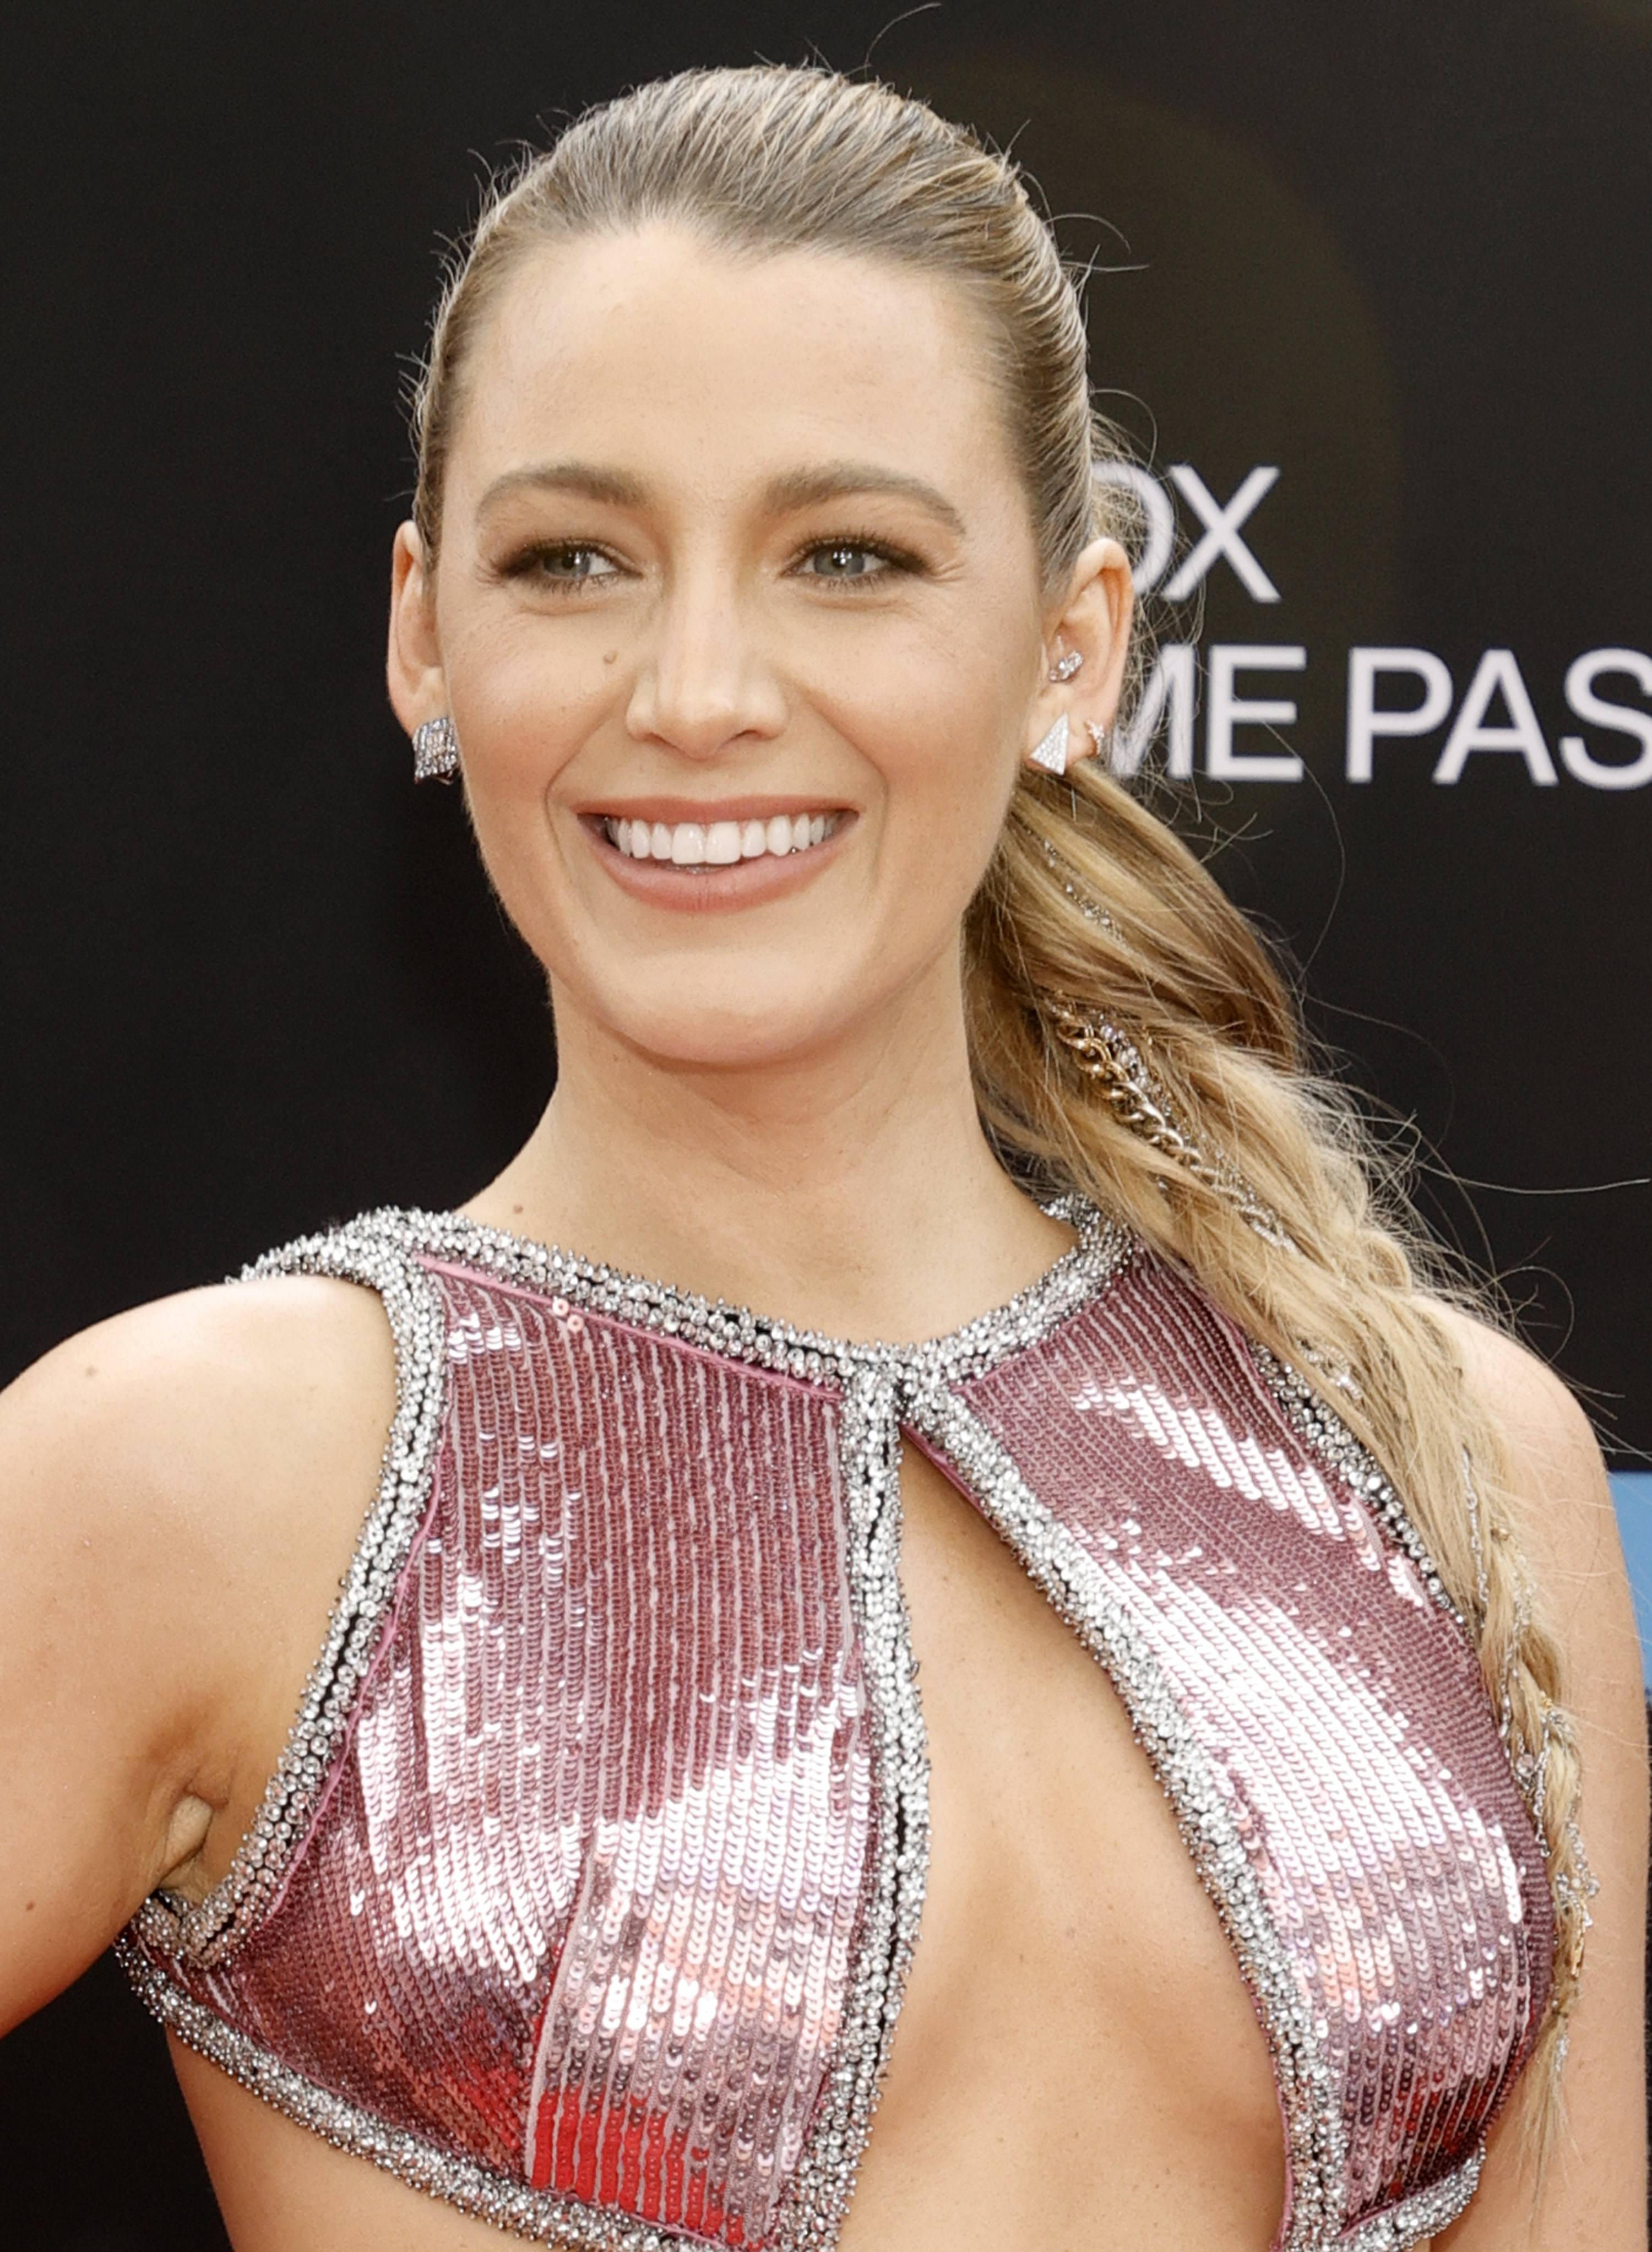 Blake Lively attends the Free Guy premiere in New York City